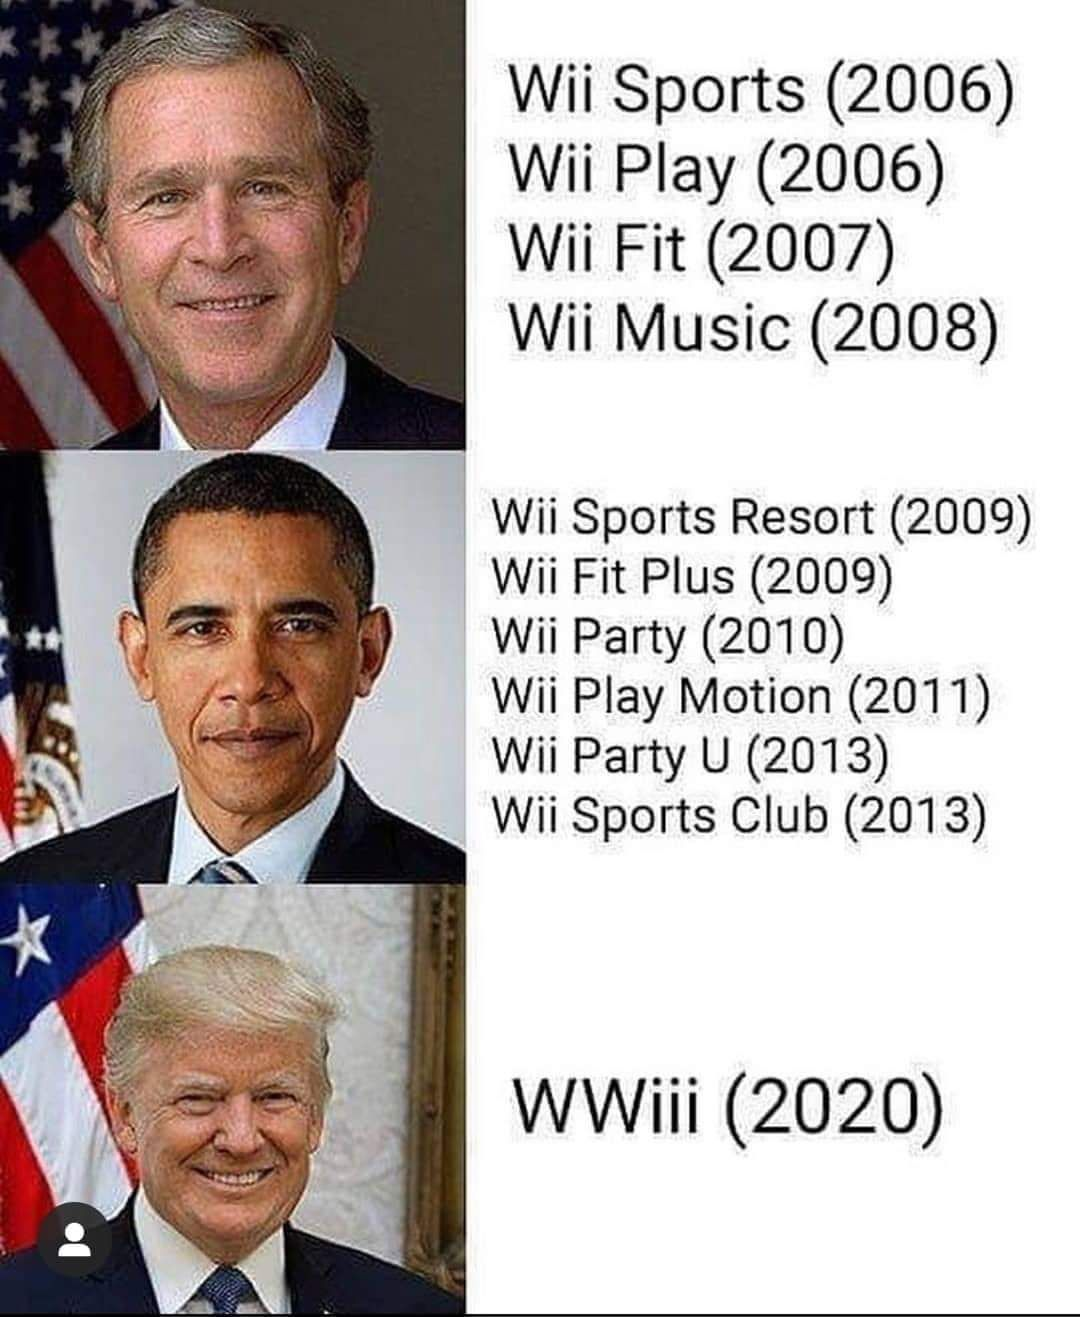 Bring back the Wii